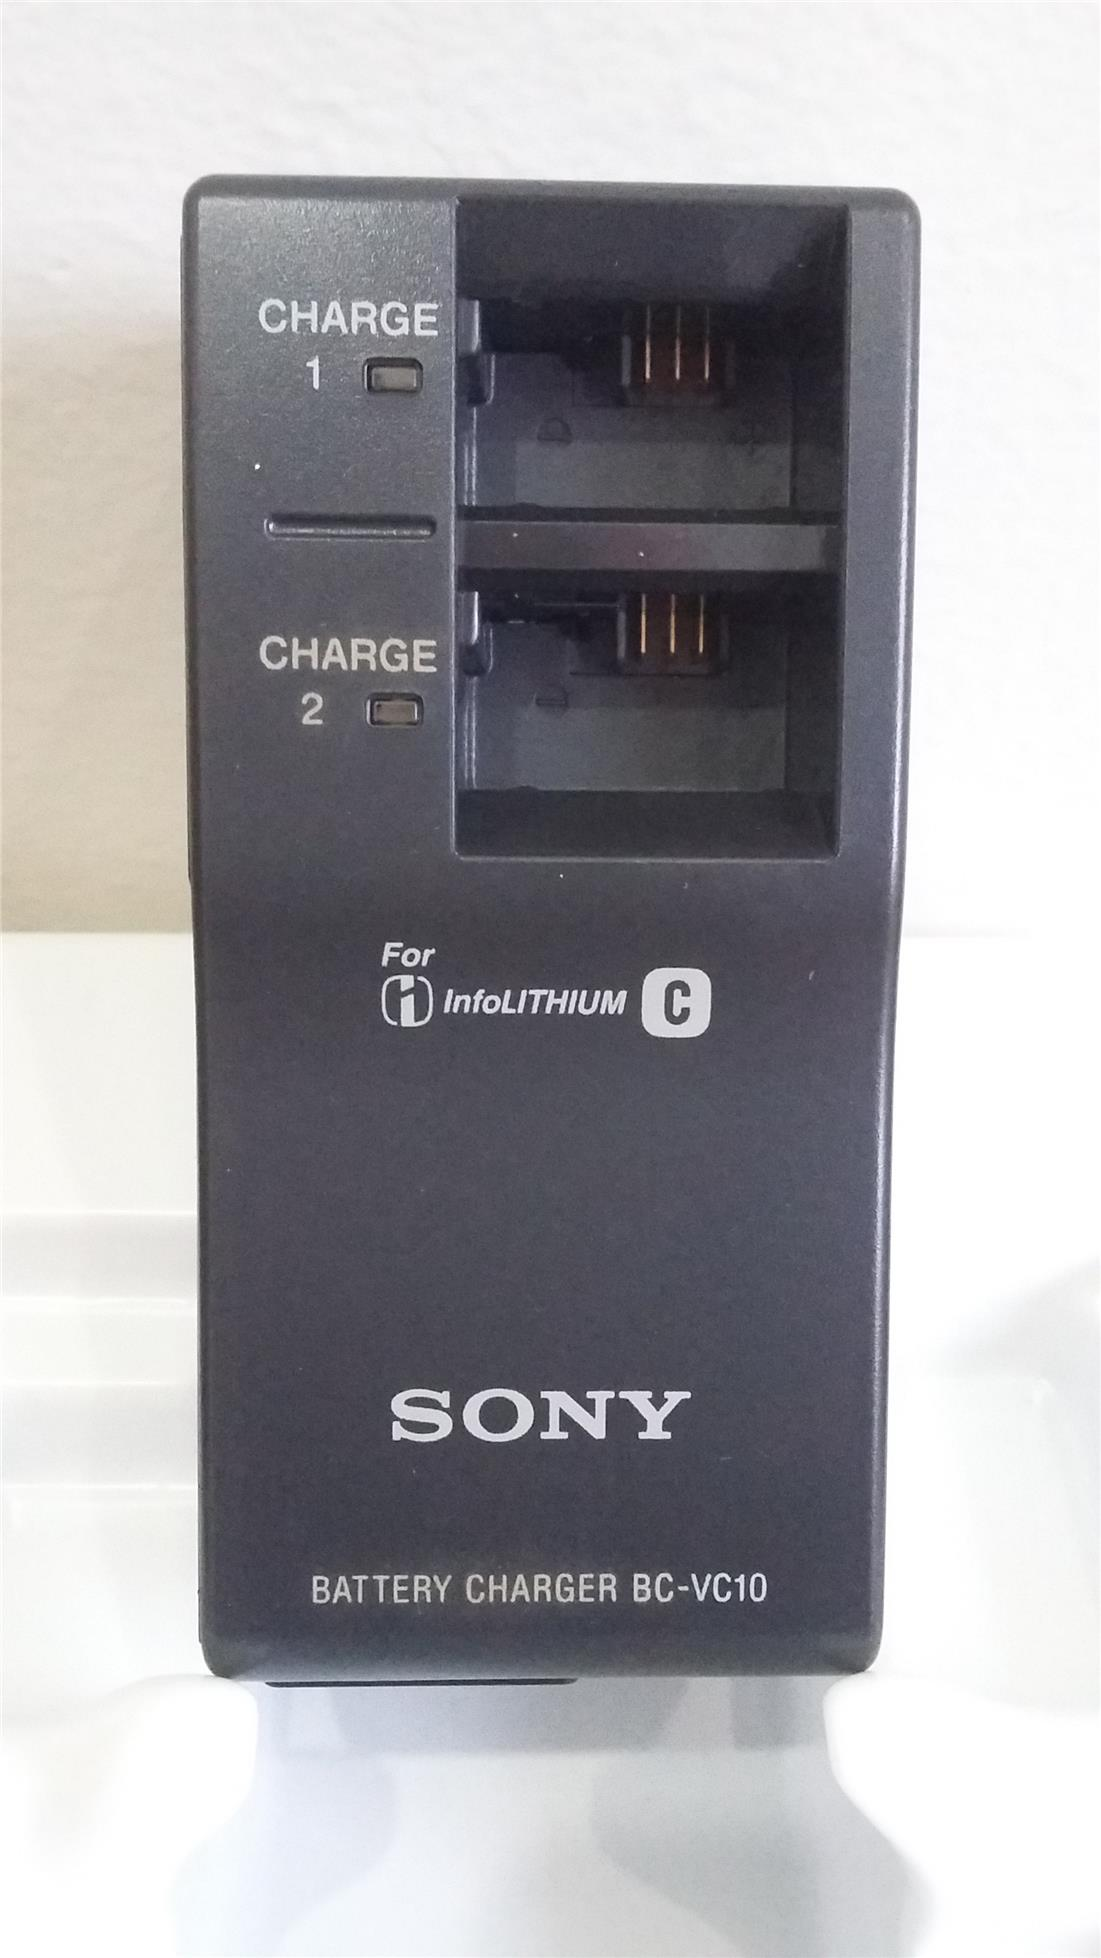 Sony Battery charger BC-VC10